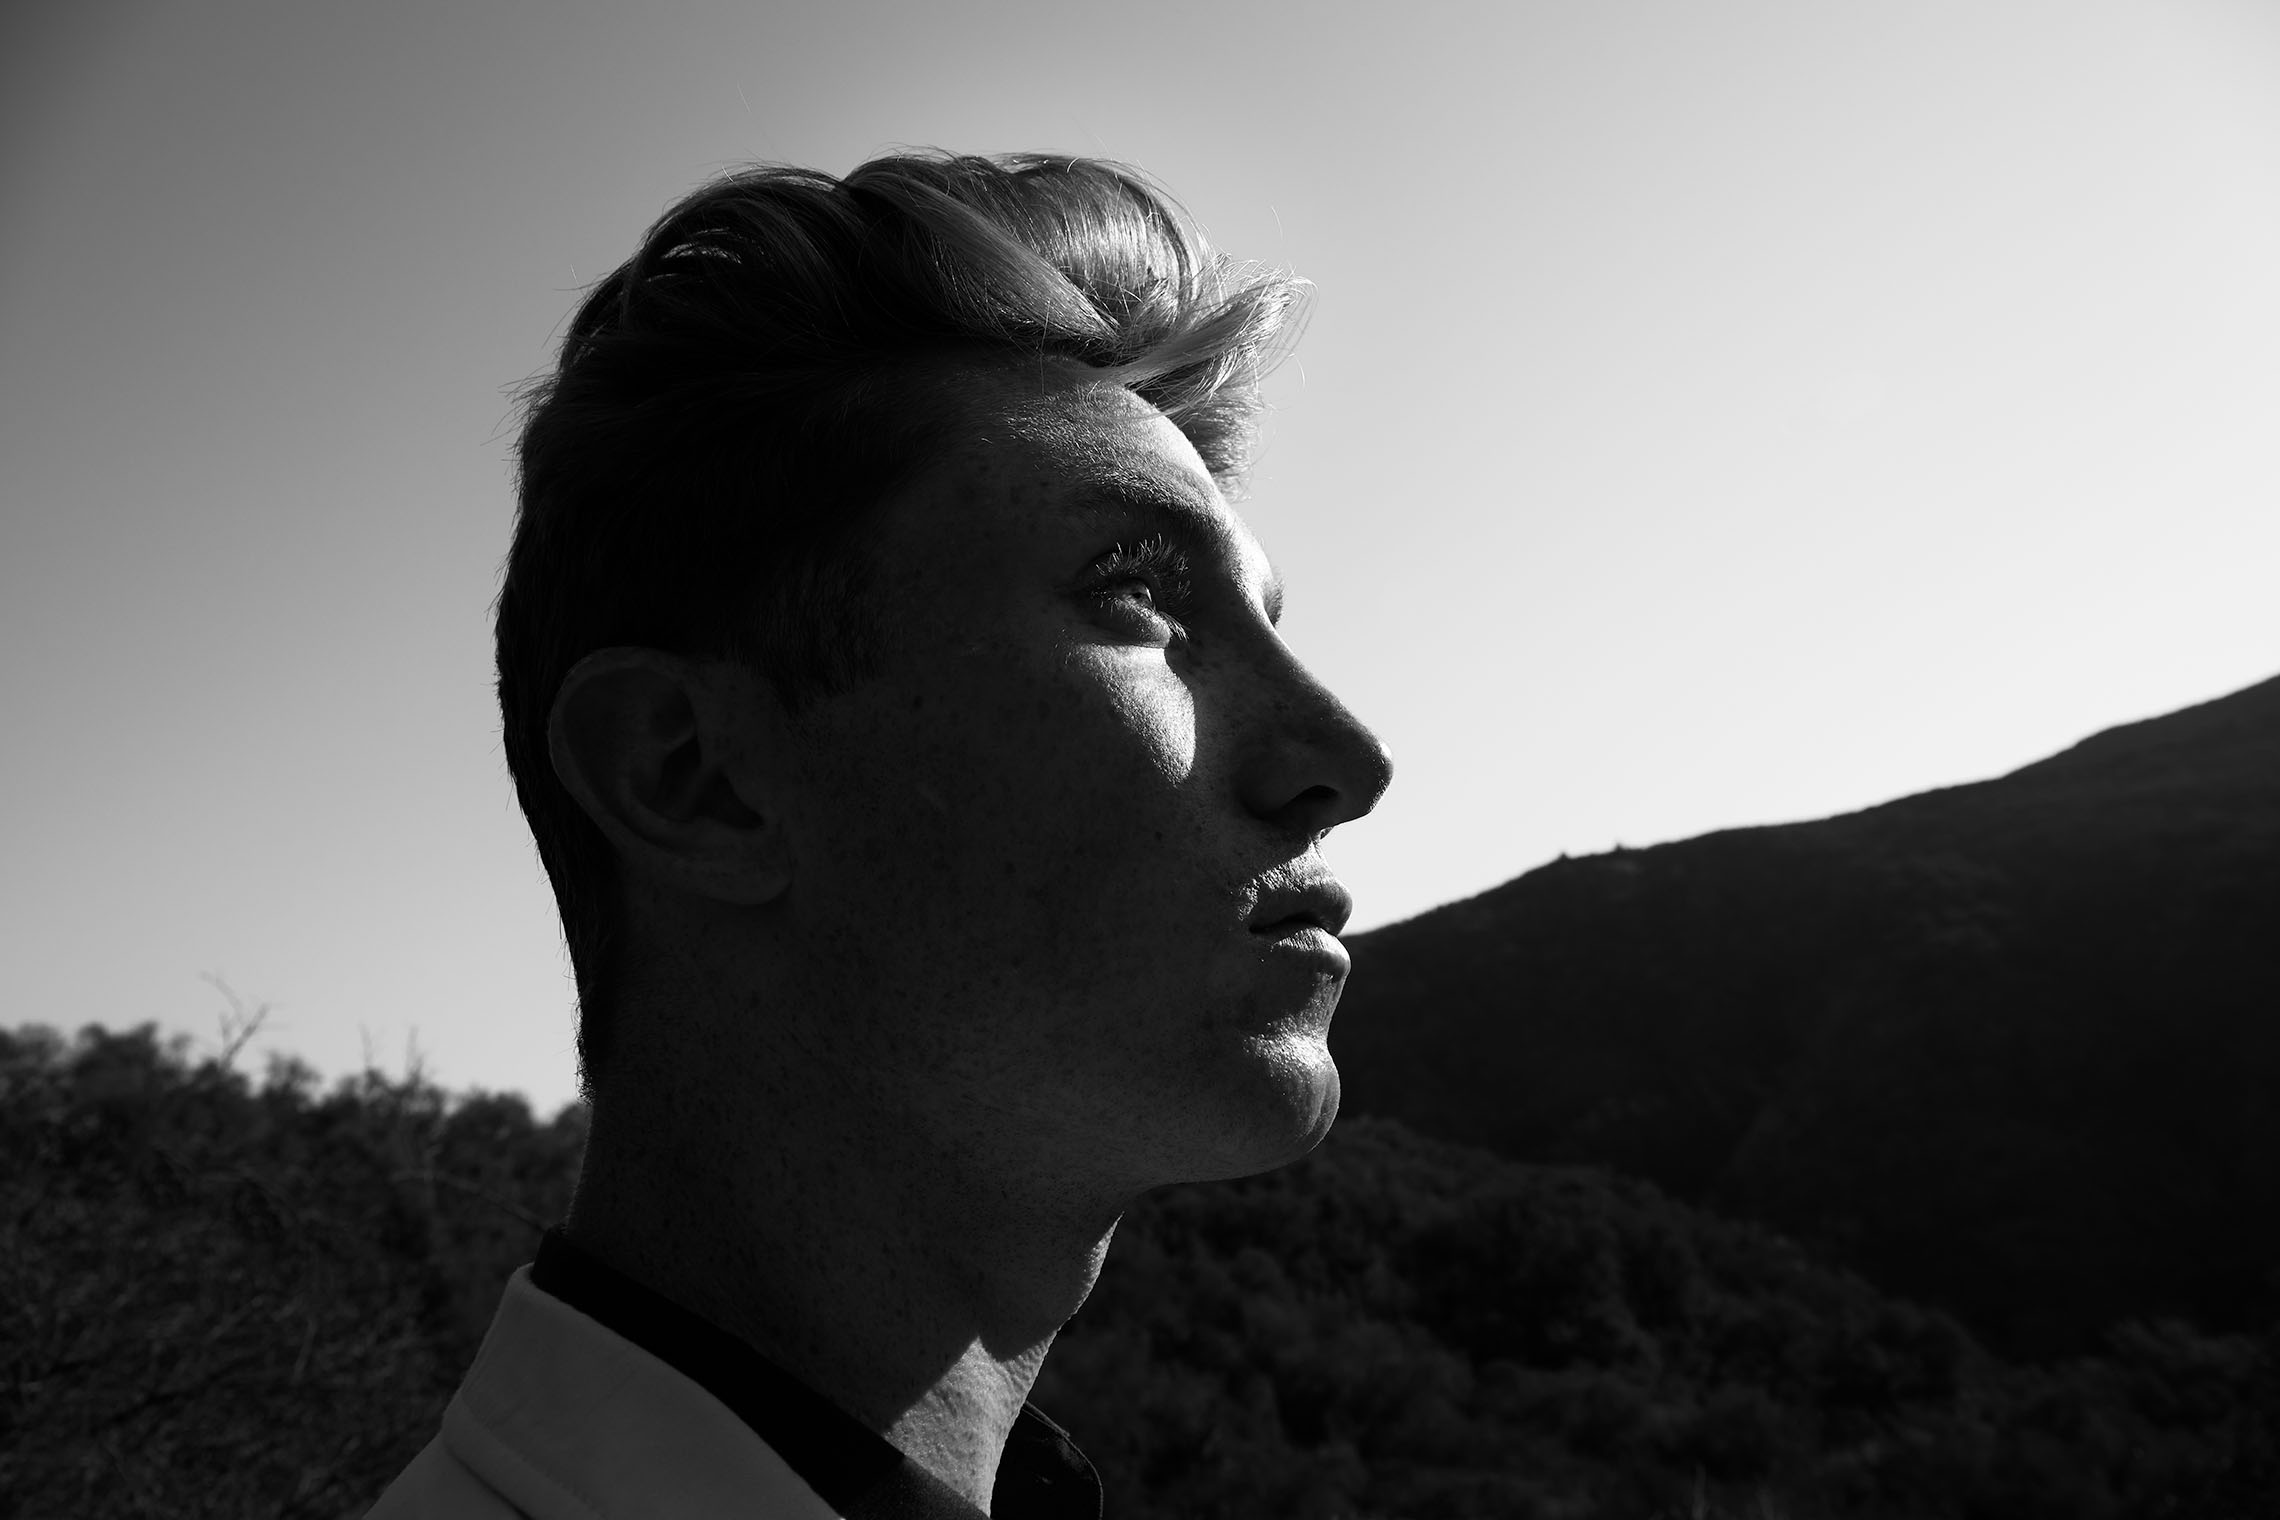 profile portrait with distorted head in nature black and white high contrast